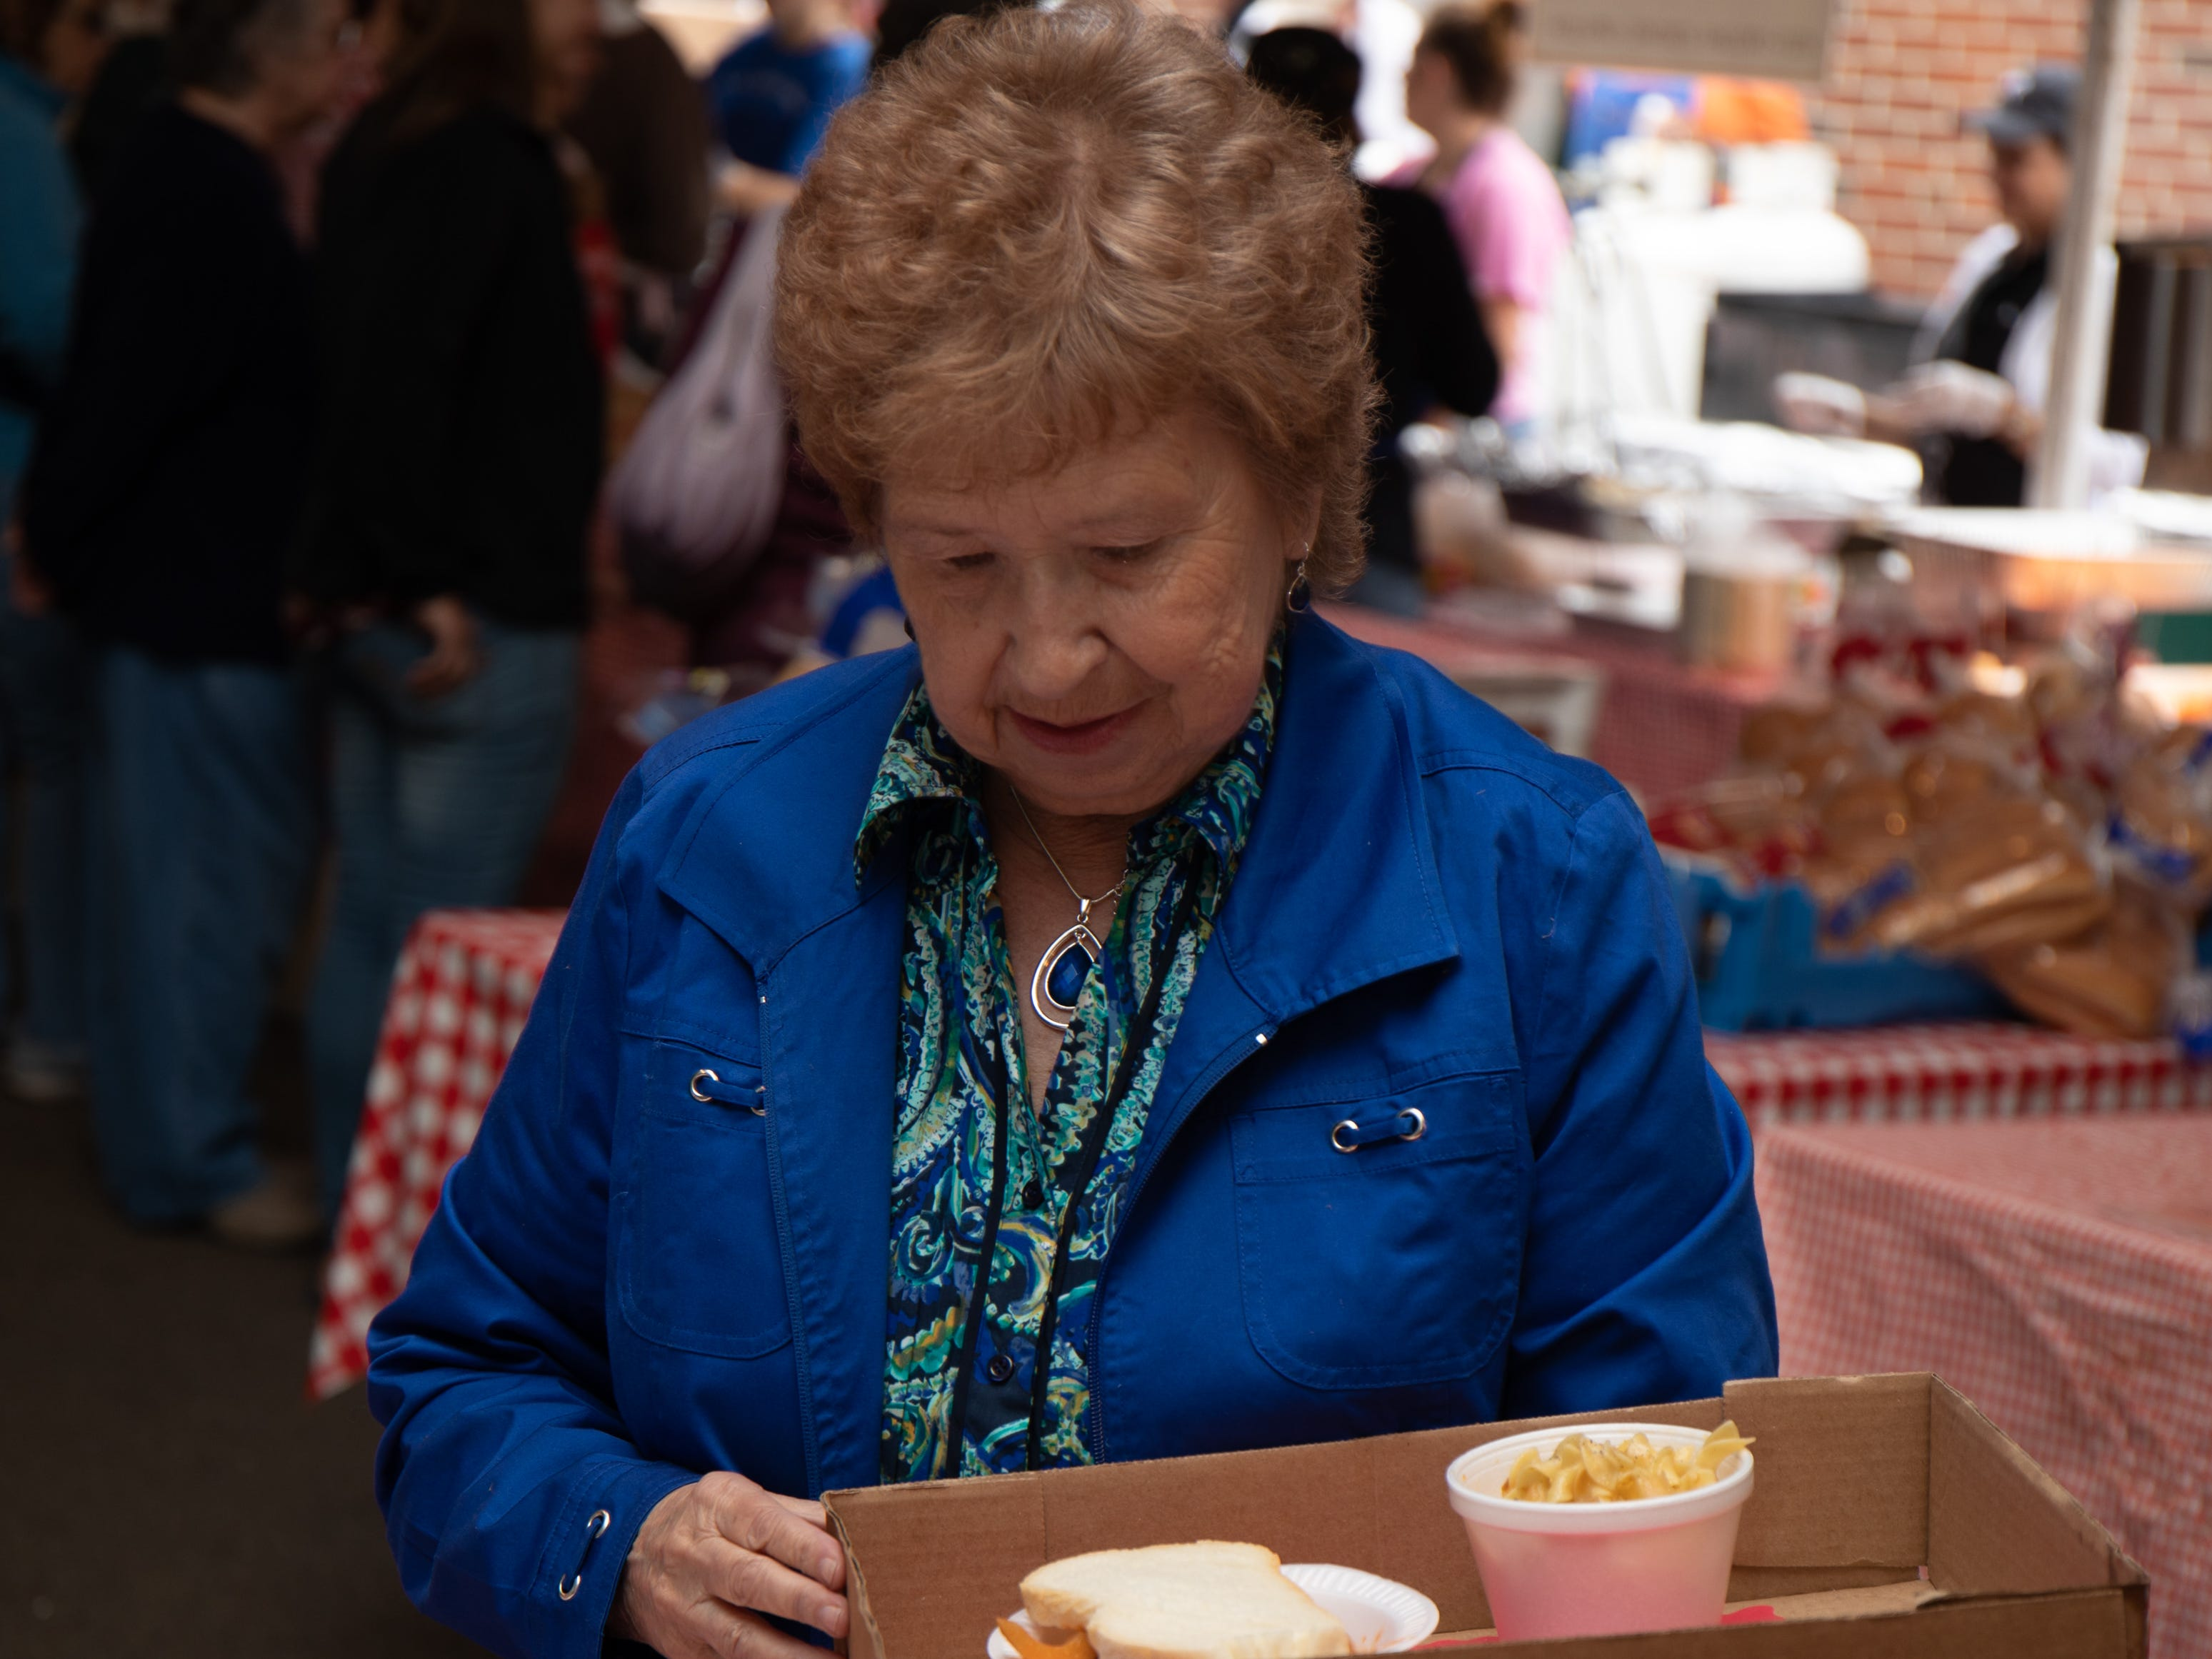 St. Joseph's Bazaar was held Sept. 8, 2018 in Endicott.